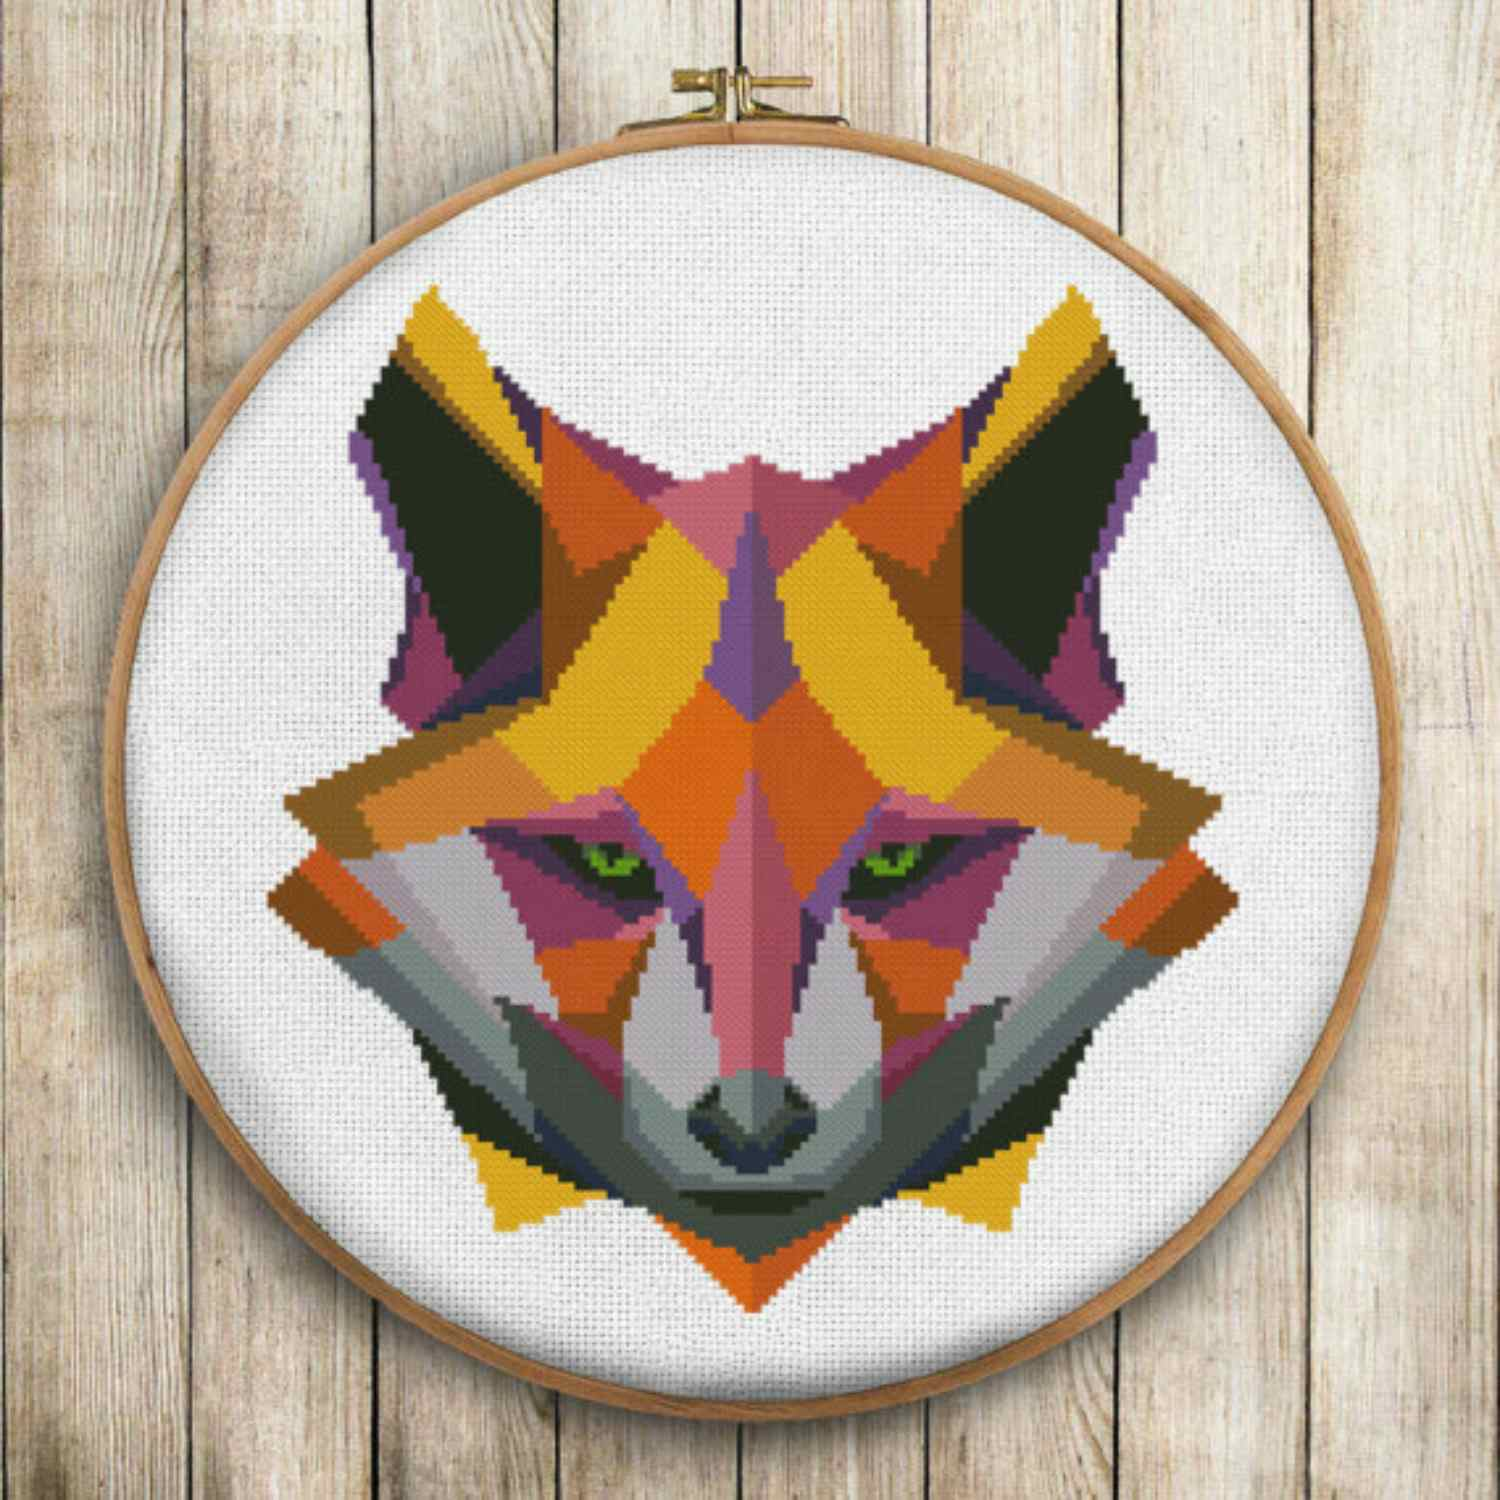 Fox. DianaFinchArt. Looking for an animal cross stitch ...